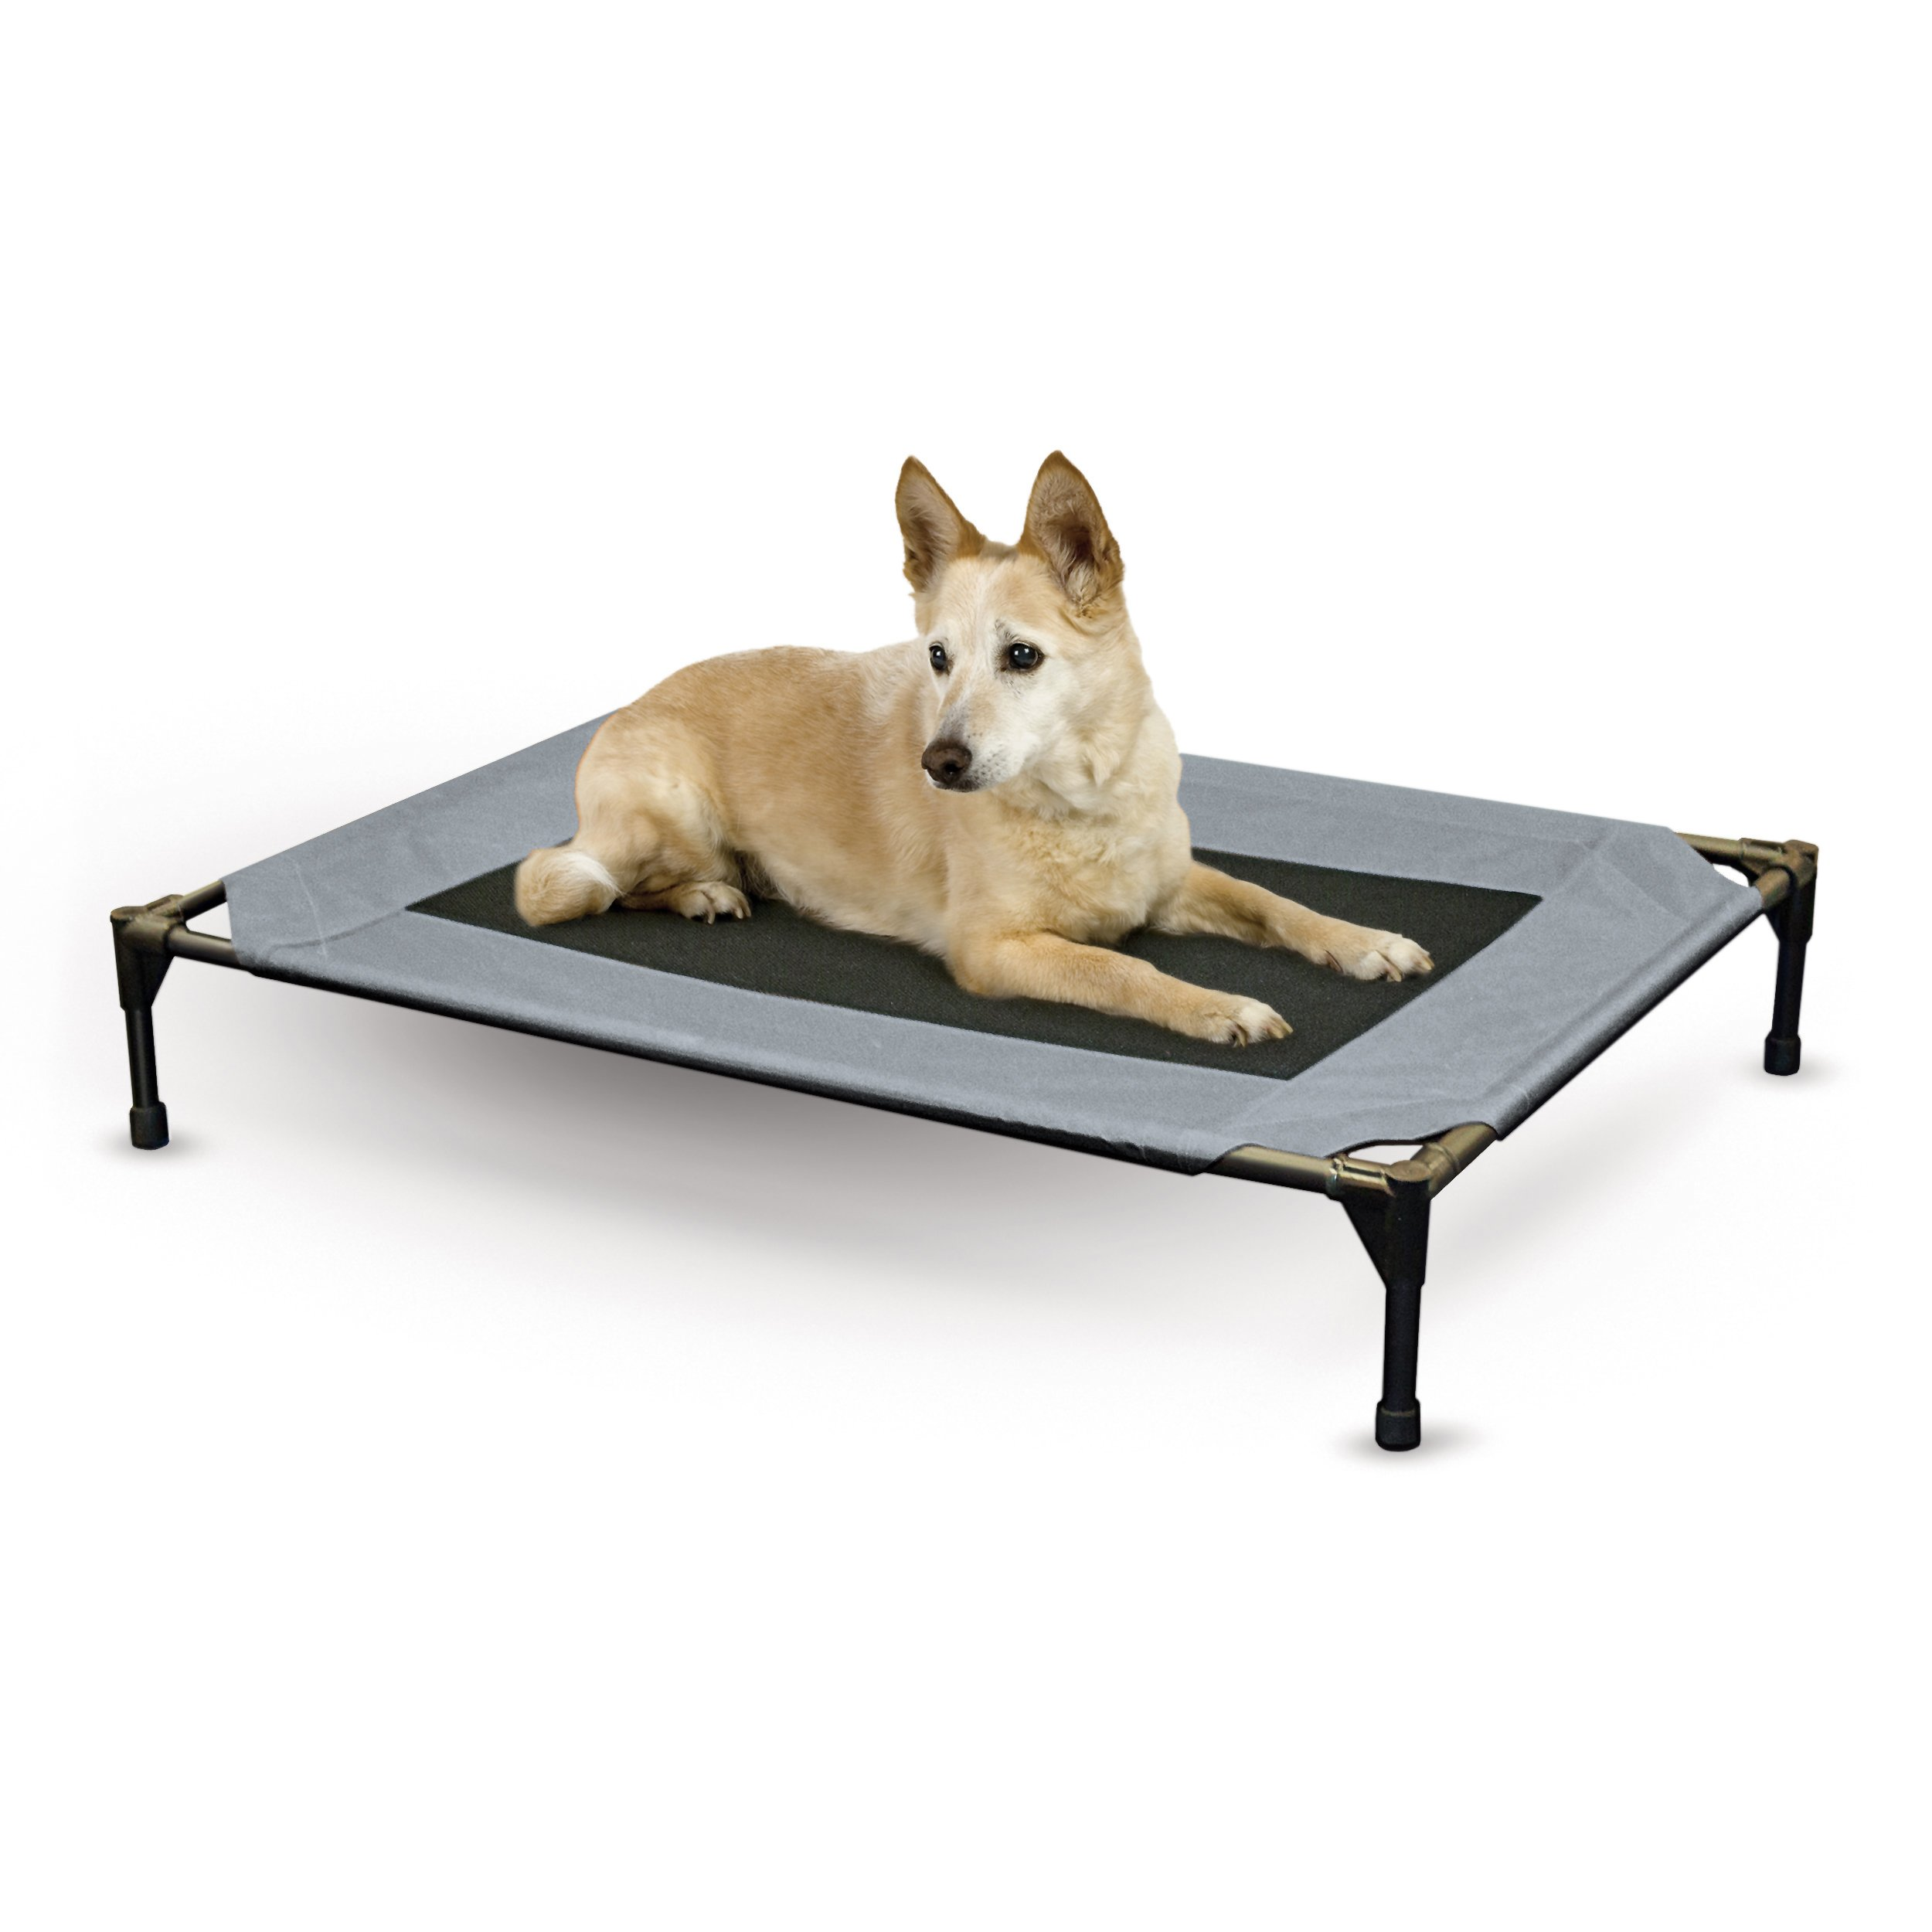 K&H Pet Products Original Pet Cot Elevated Pet Bed Large Gray/Mesh 30'' x 42'' x 7''